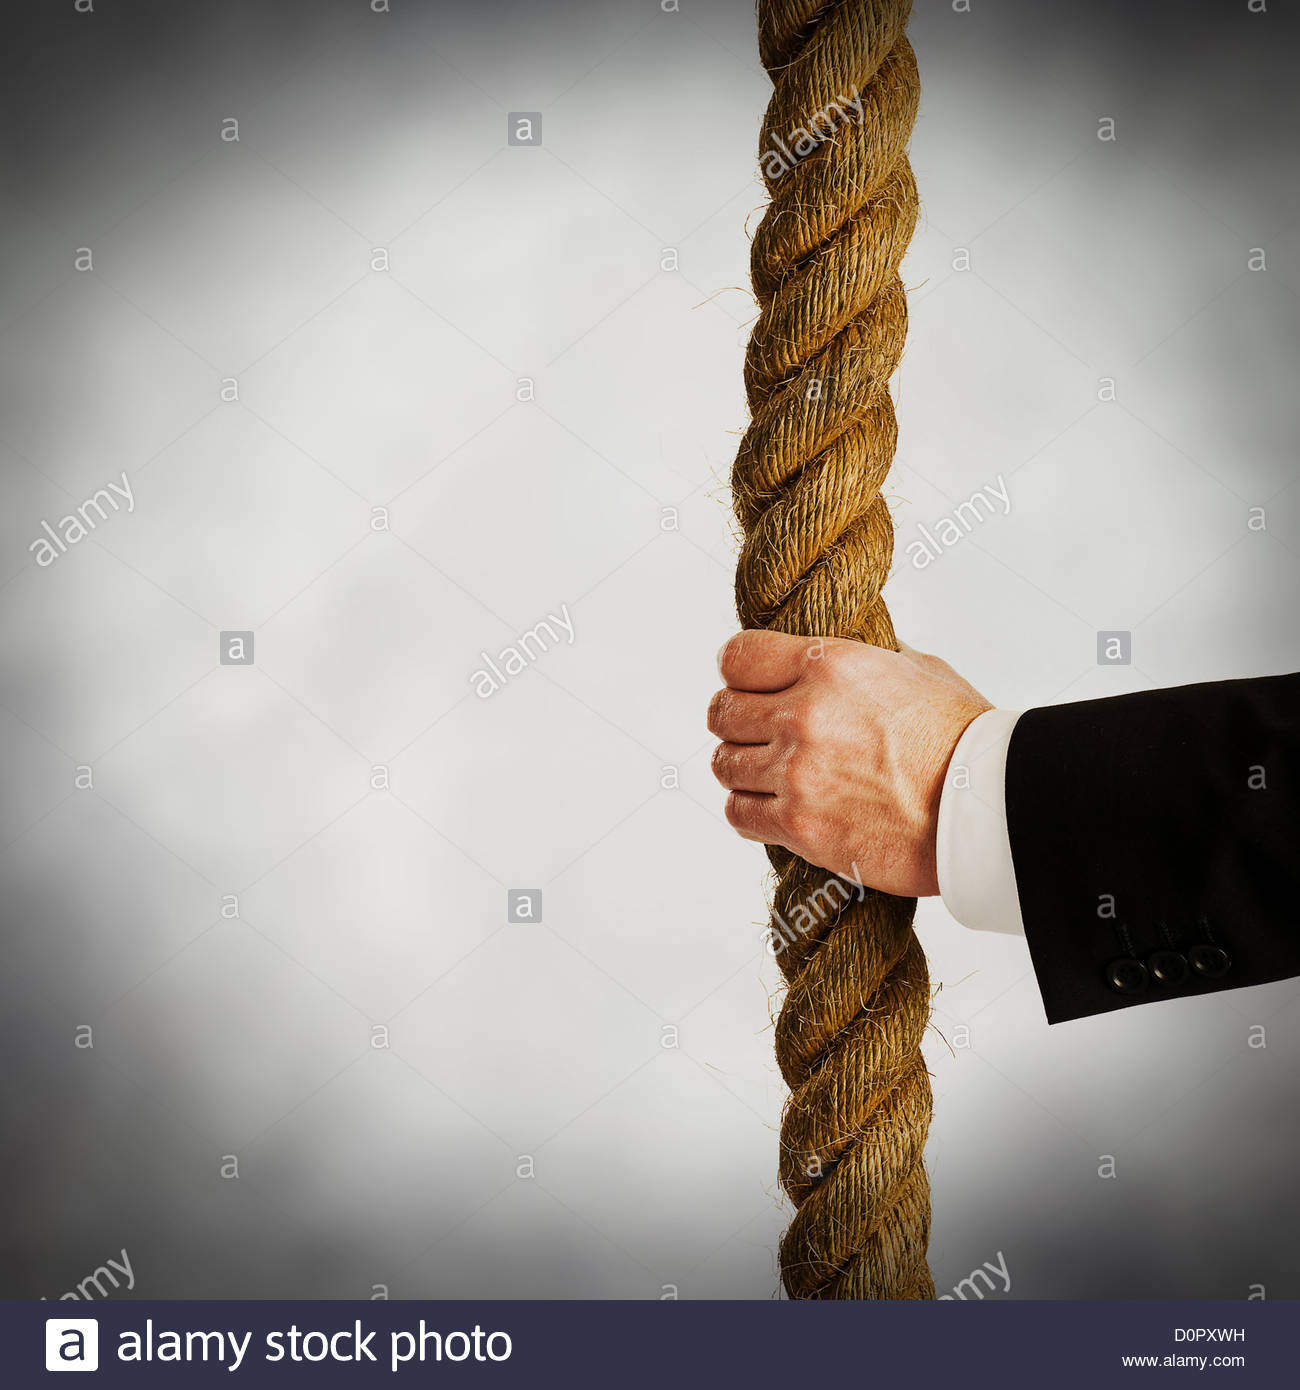 hold on to rope - Stock Image